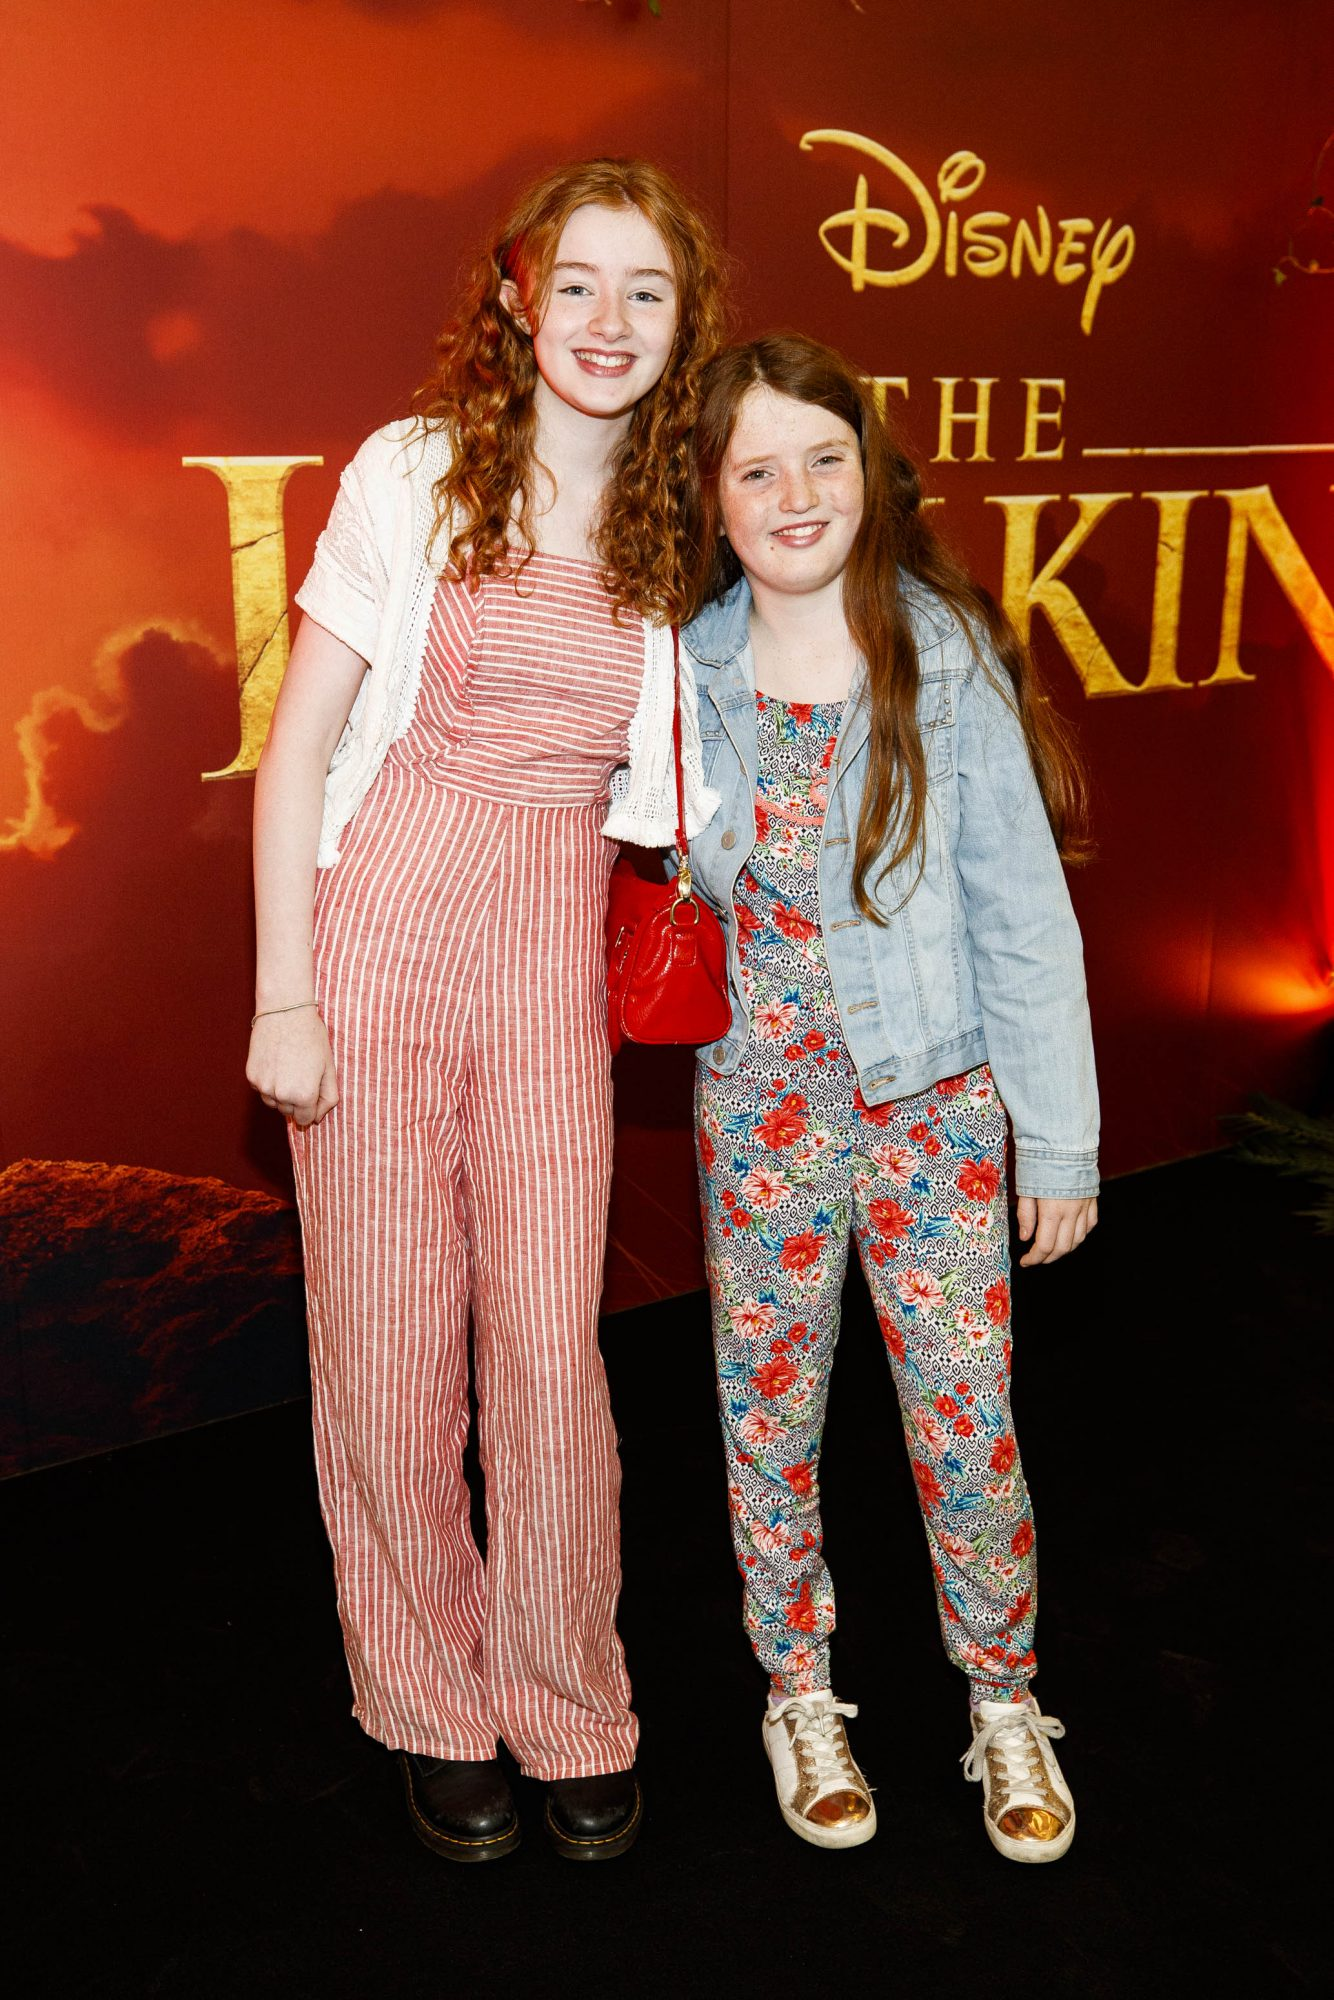 Eve Maher (13) and Amber O'Grady (12) pictured at a special family screening of Disney's THE LION KING at the Odeon Point Village. Picture: Andres Poveda